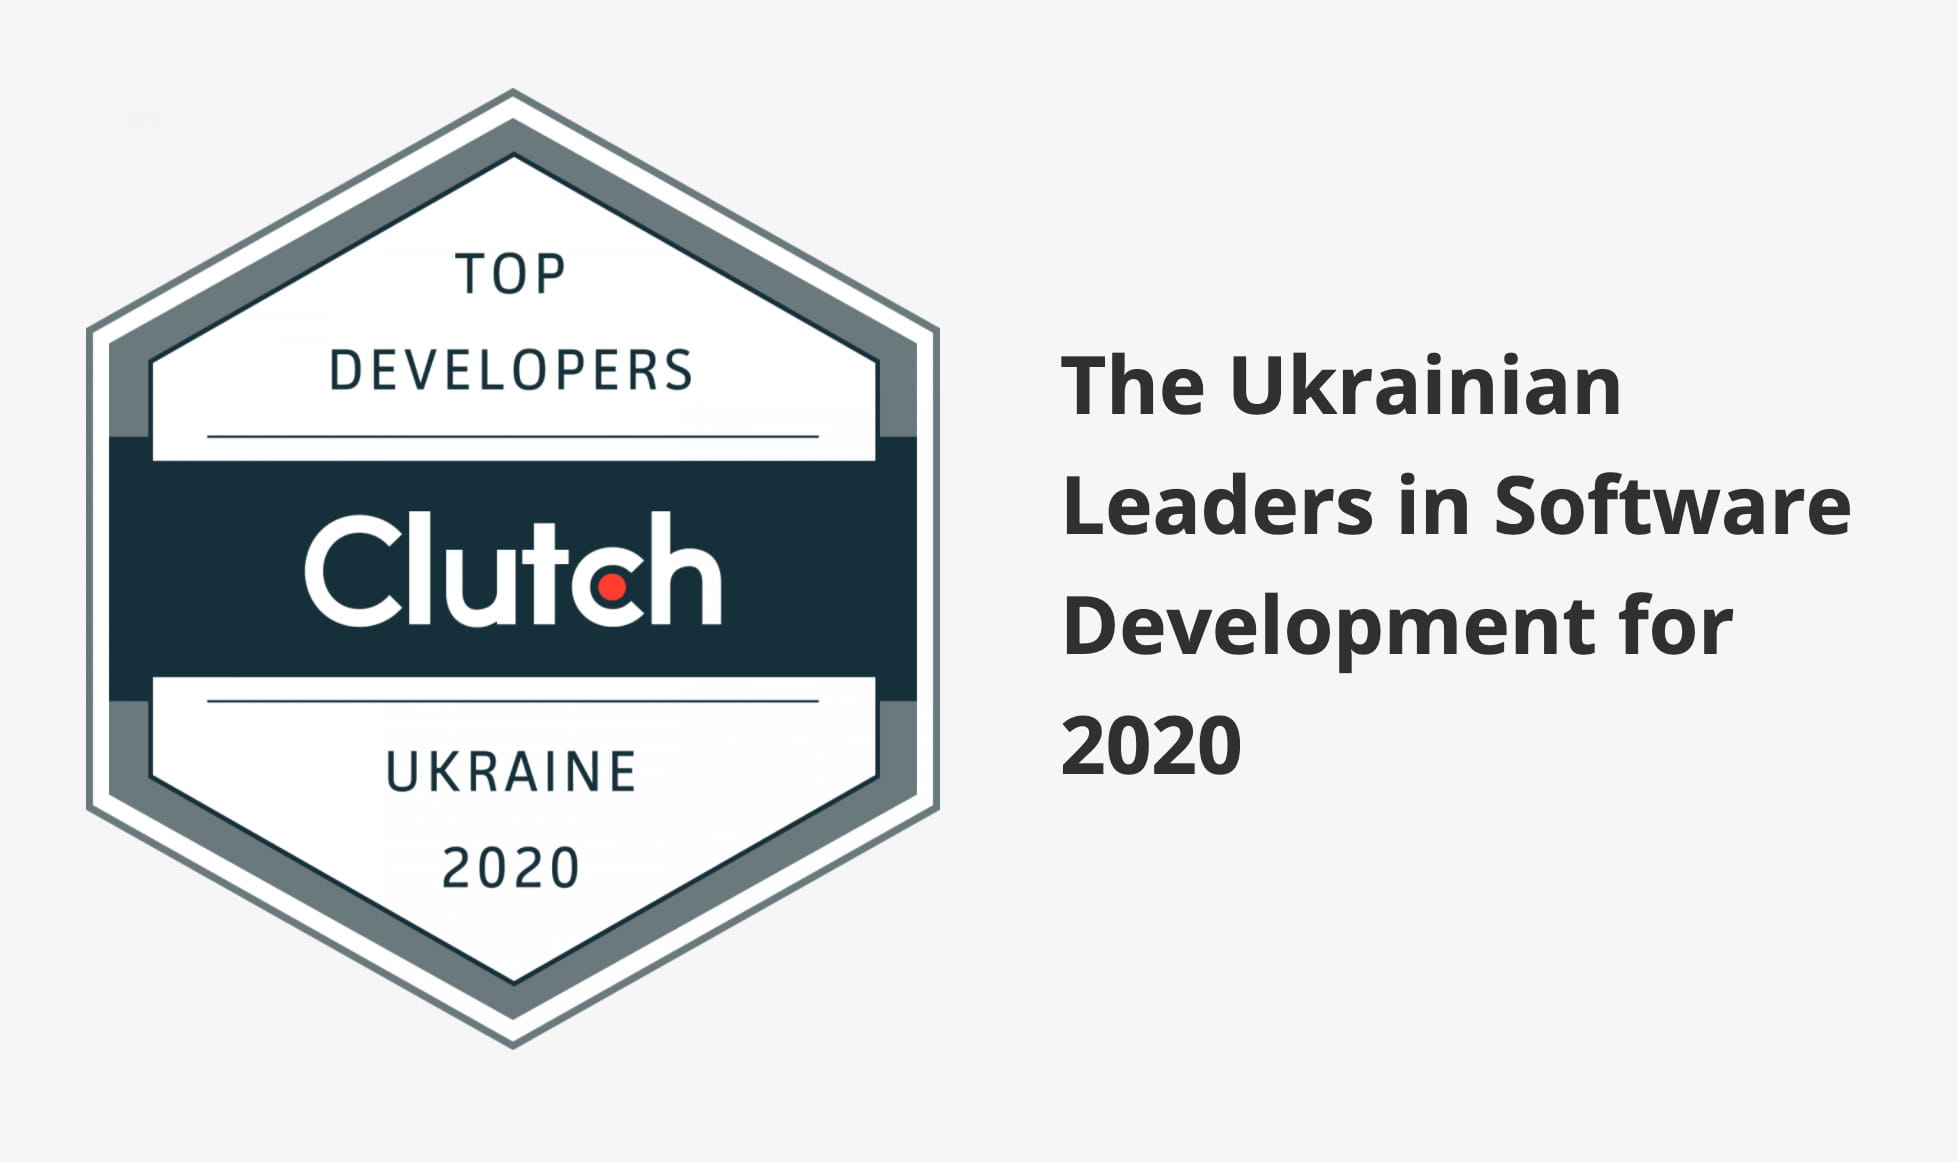 Top Ukrainian Developers according to Clutch